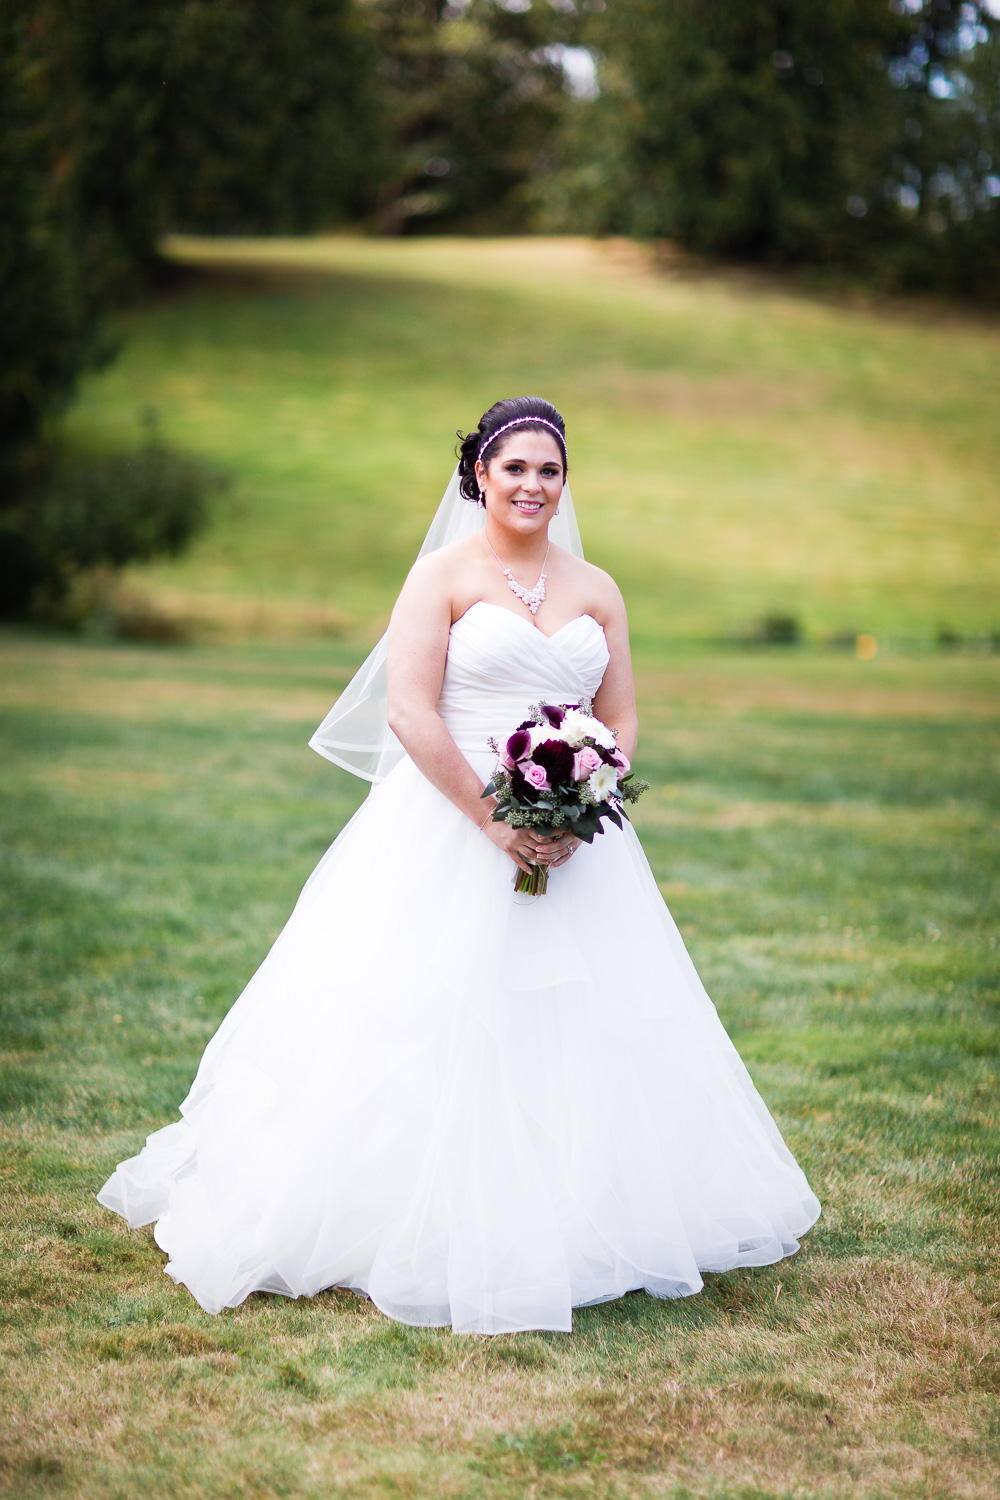 wild-rose-weddings-arlington-chris-harth-photography-232.jpg